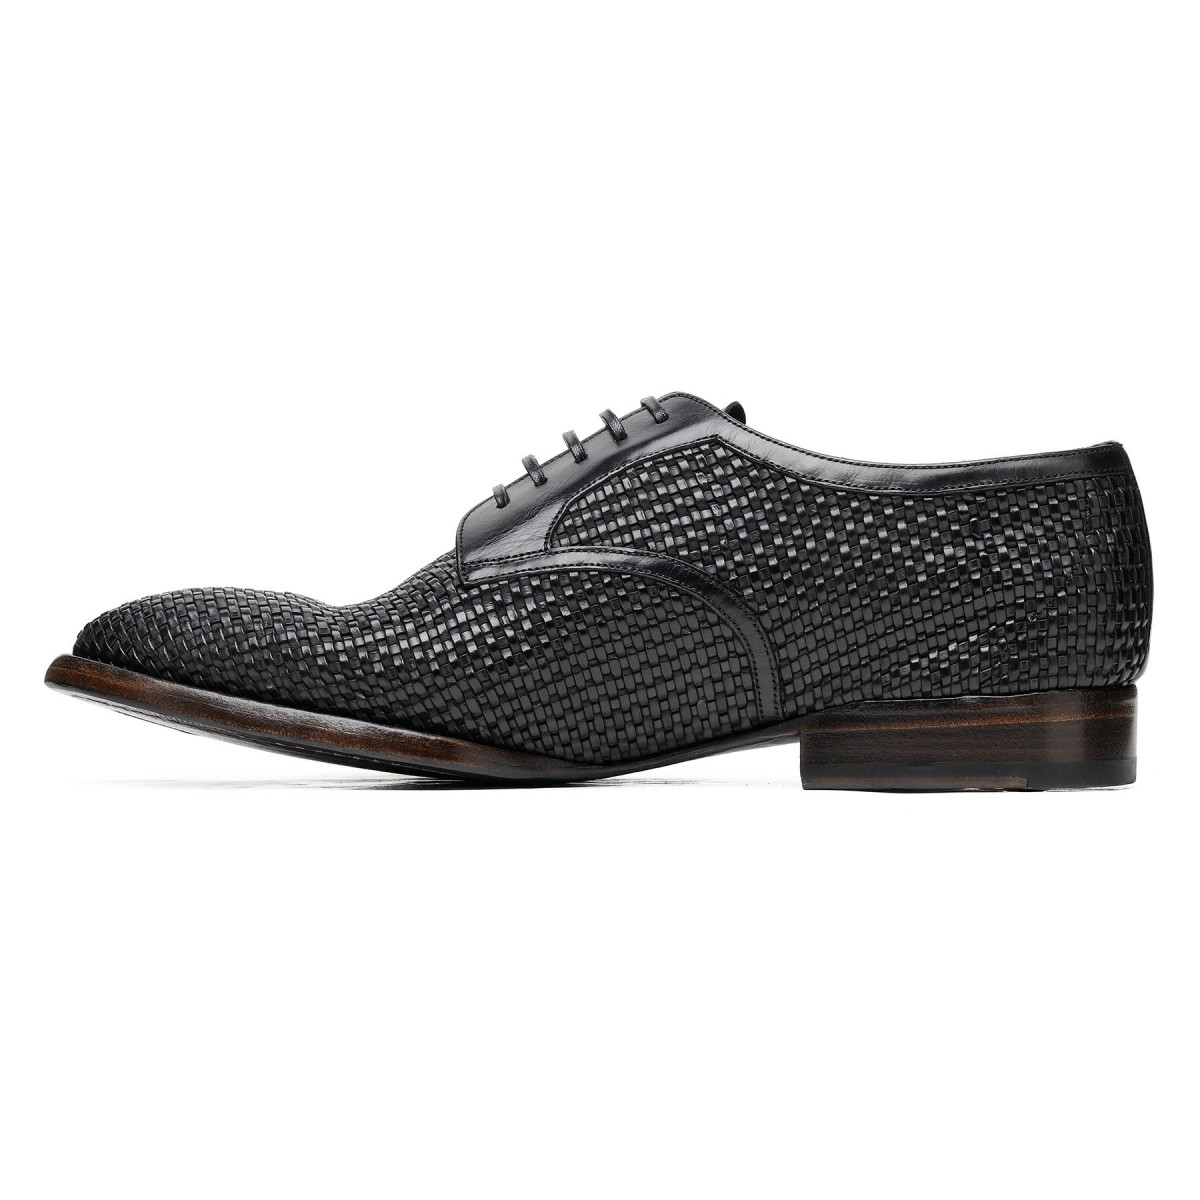 Black woven leather Derby shoes